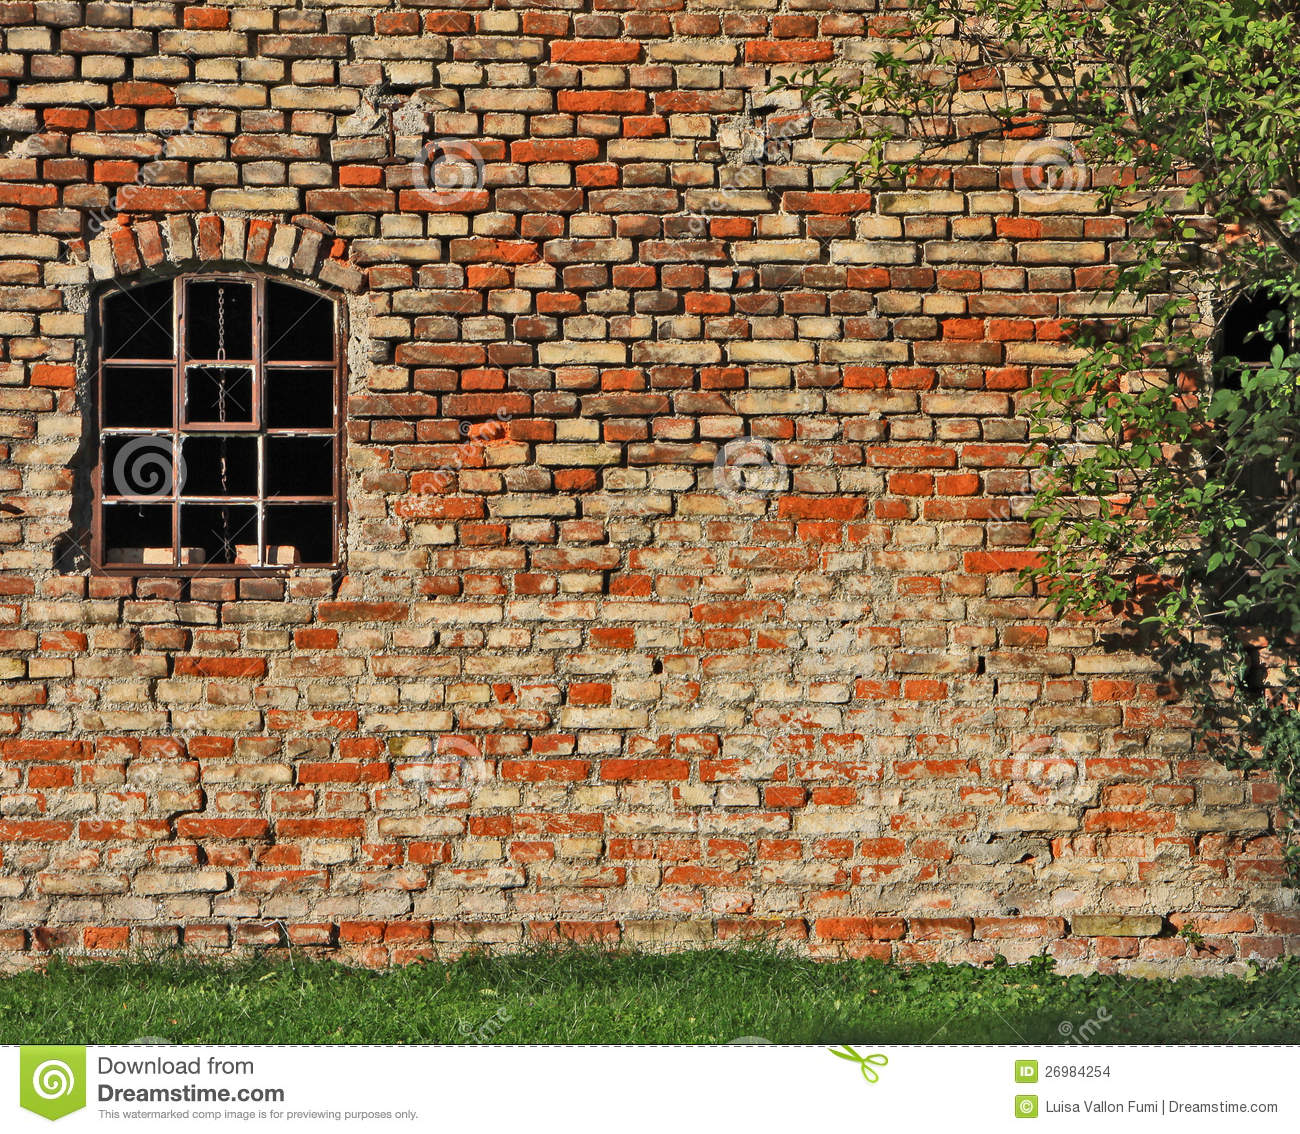 Old brick wall as a frame 01 stock photo image 18377500 - Old Brick Wall As A Frame 01 Stock Photo Image 18377500 Landscaping Plans Prices Of Download